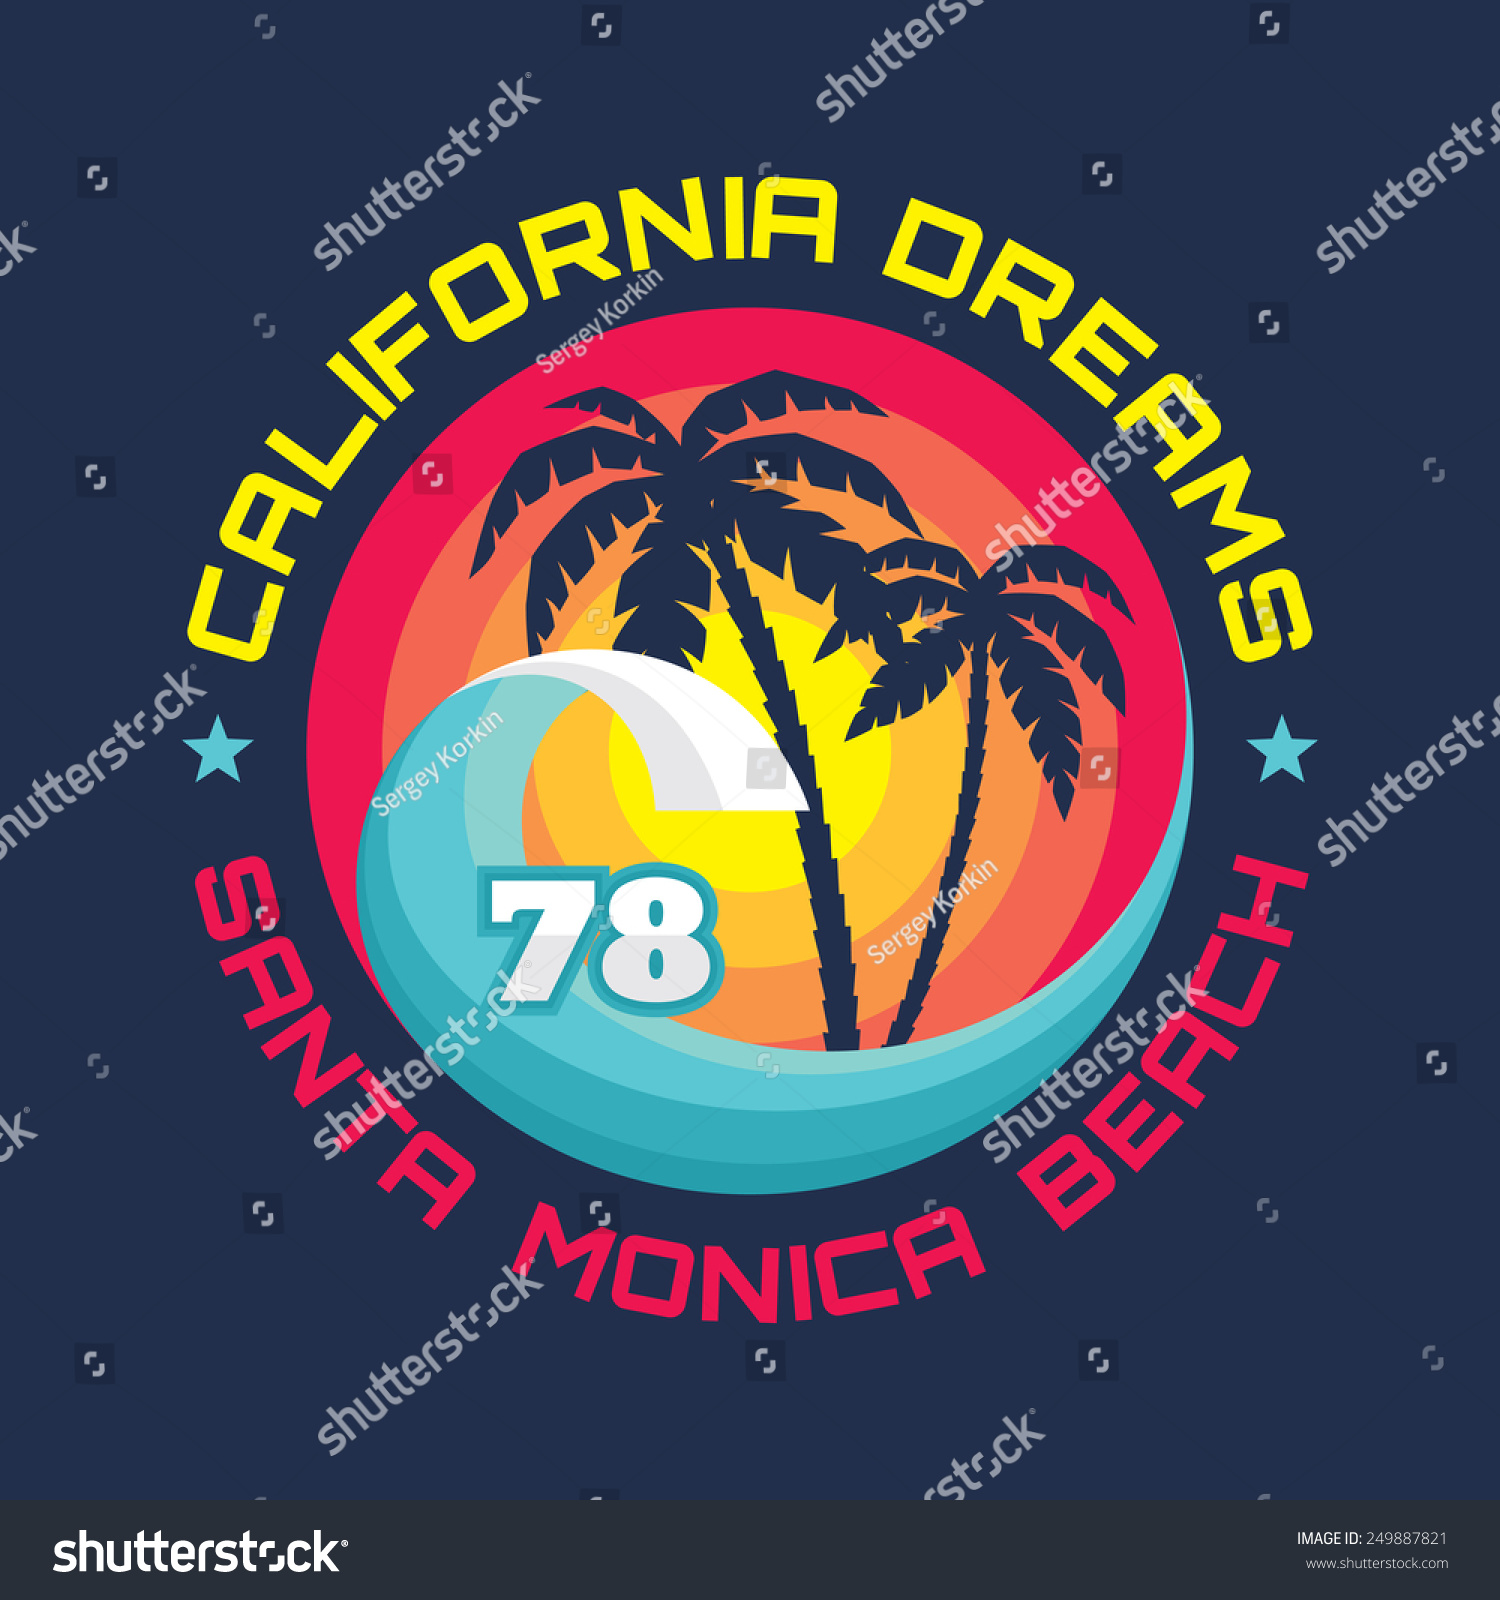 13c0ad669 California - Santa Monica beach - vector illustration in vintage graphic  style for t-shirt